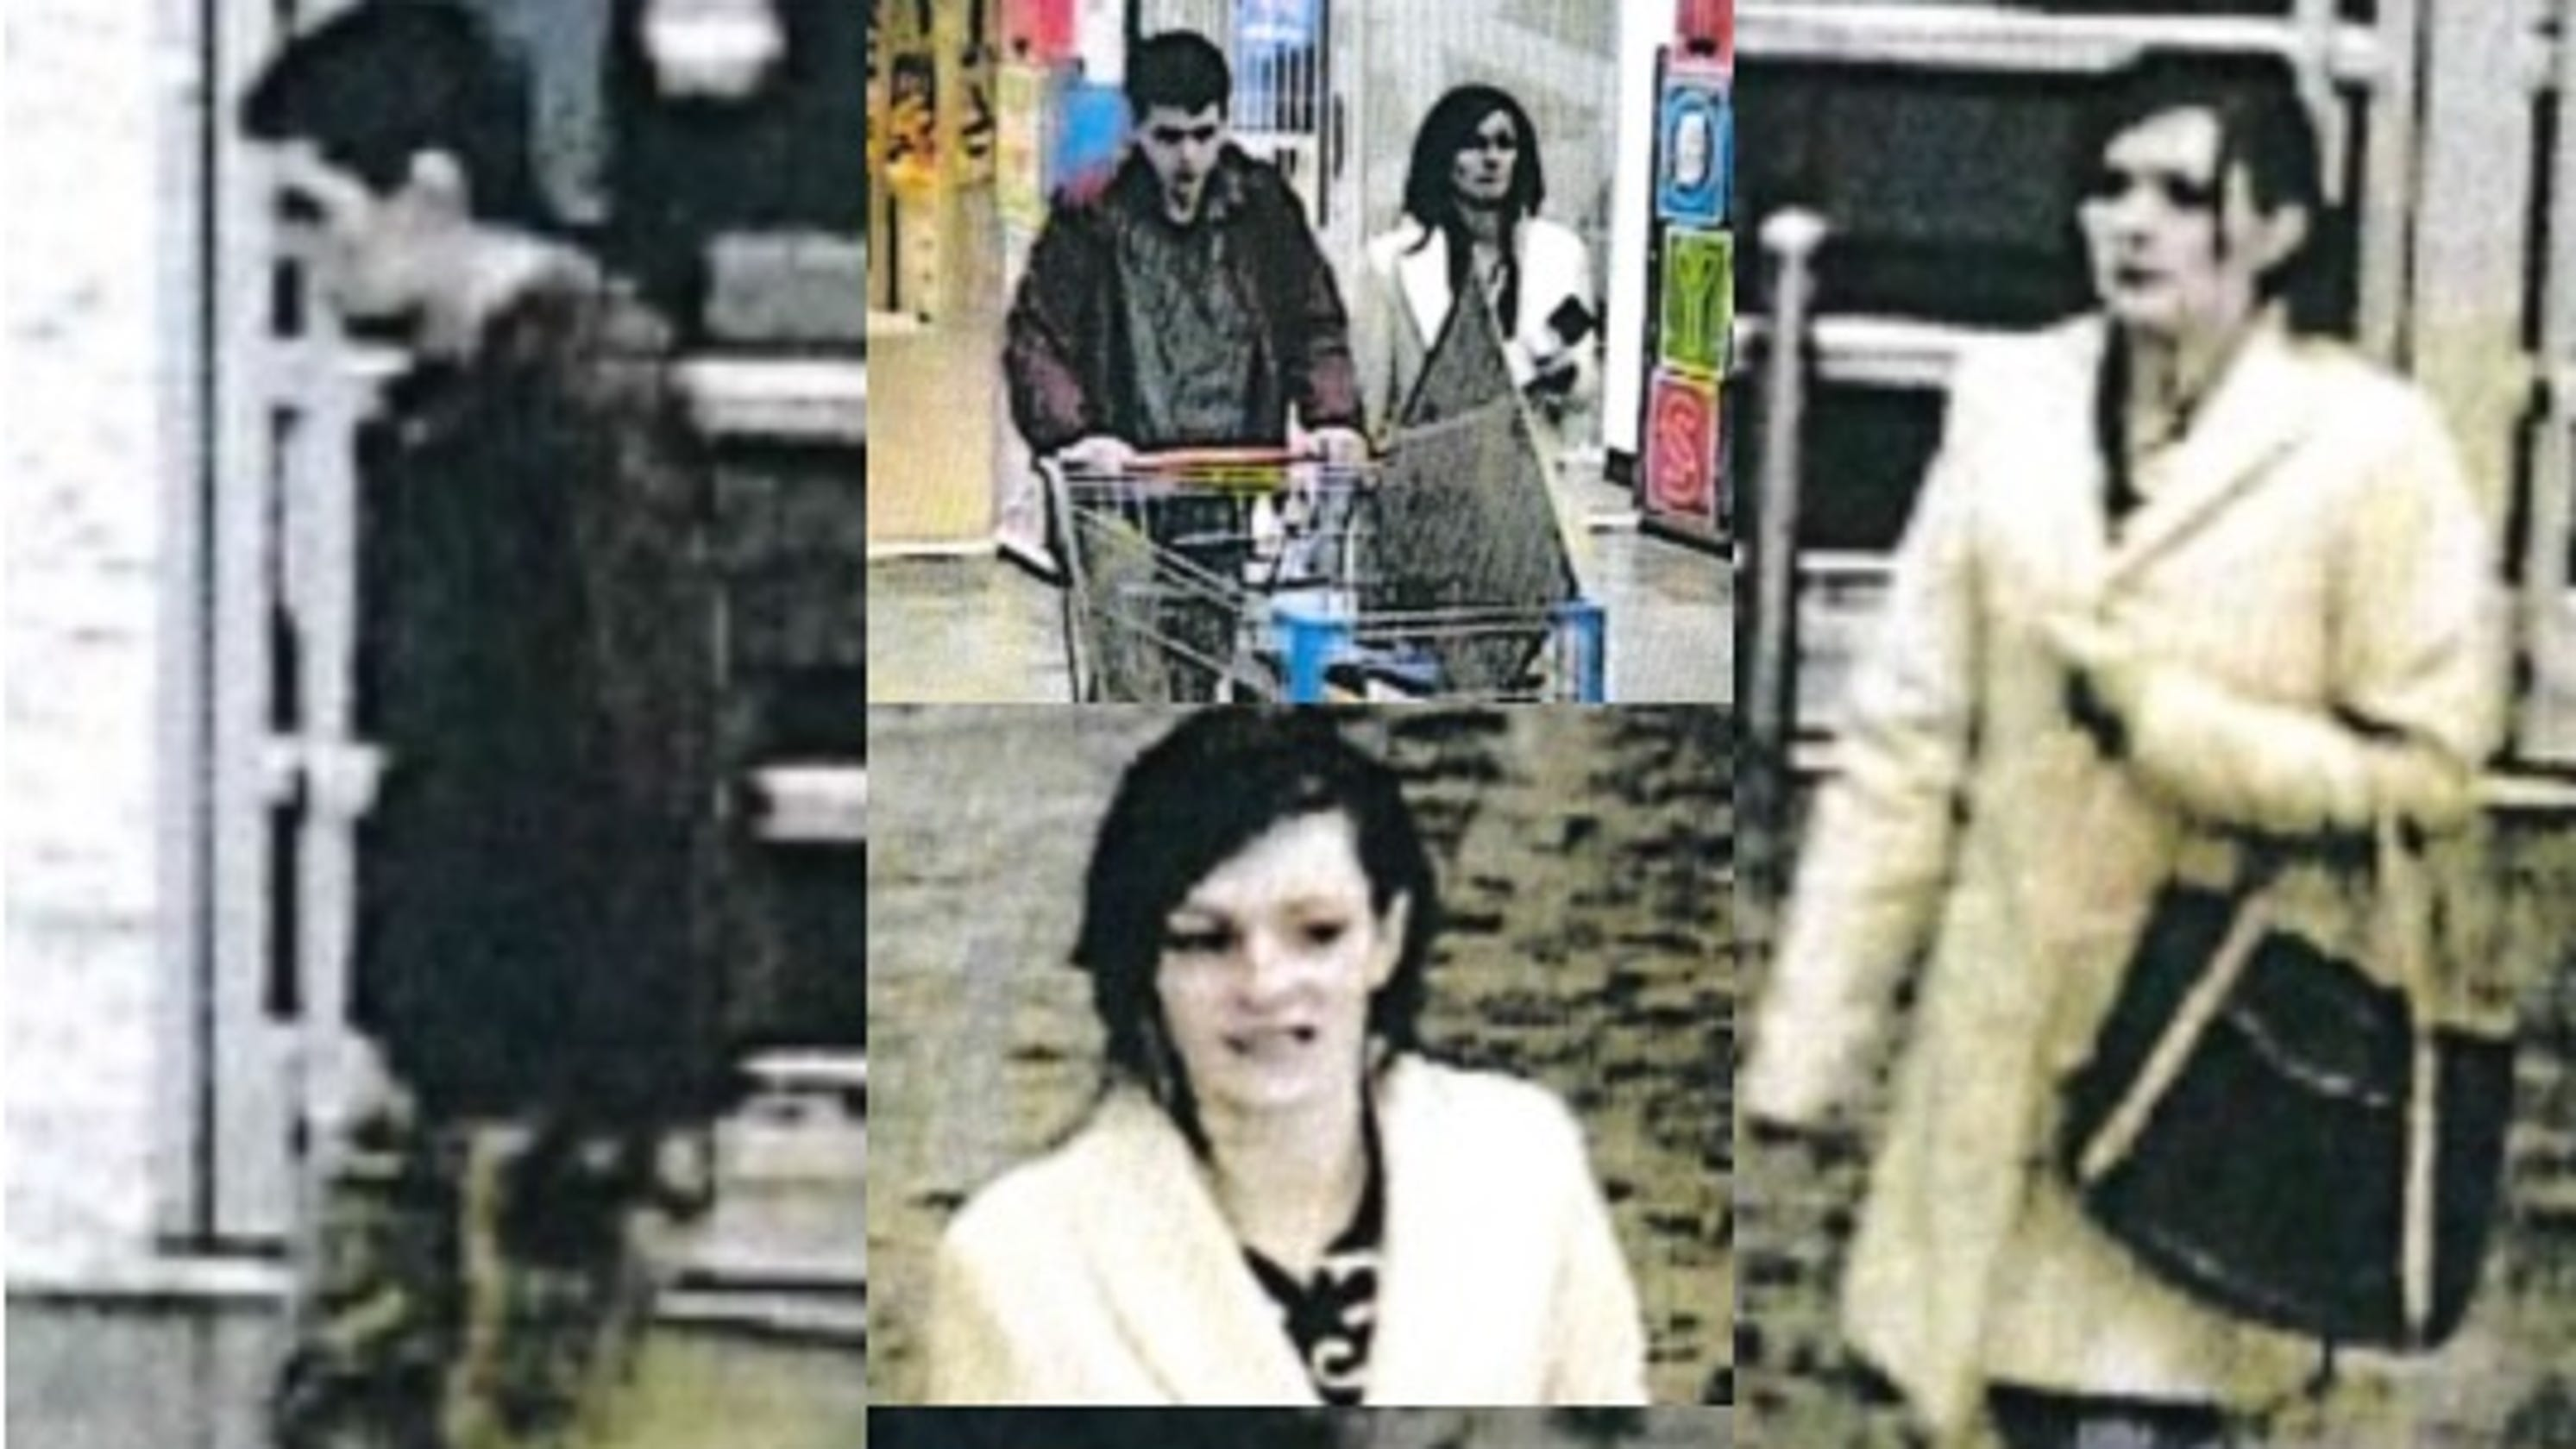 Couple suspected of shoplifting $5,000 in cell phones from Walmart